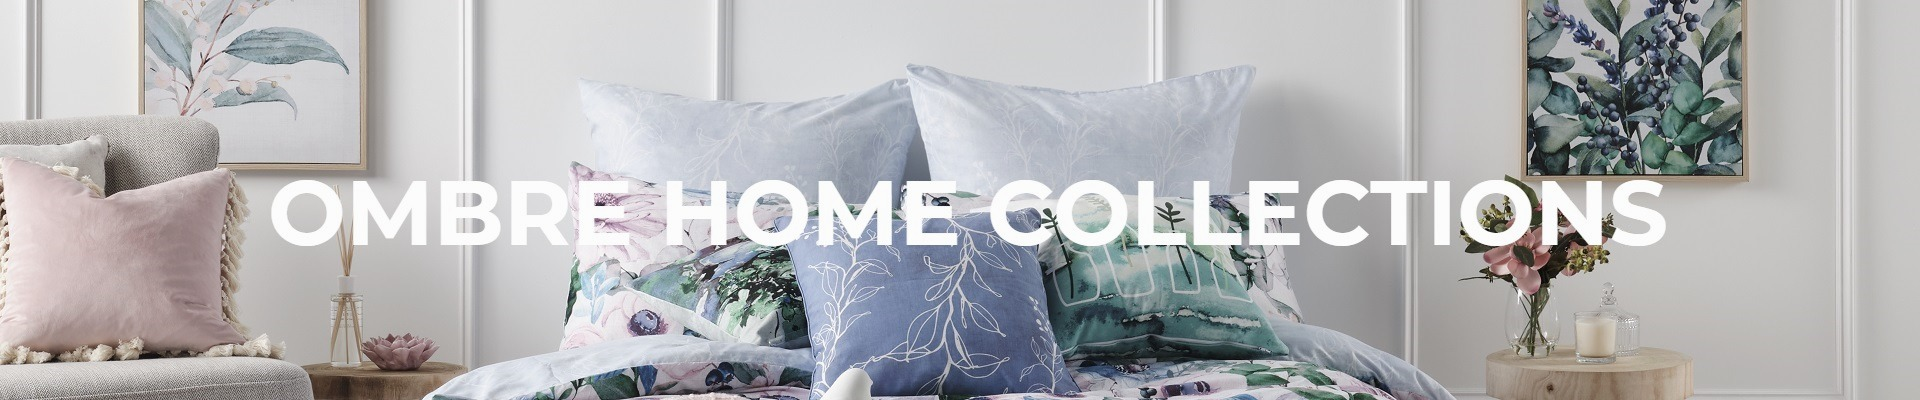 Shop Our Ombre Home Collections